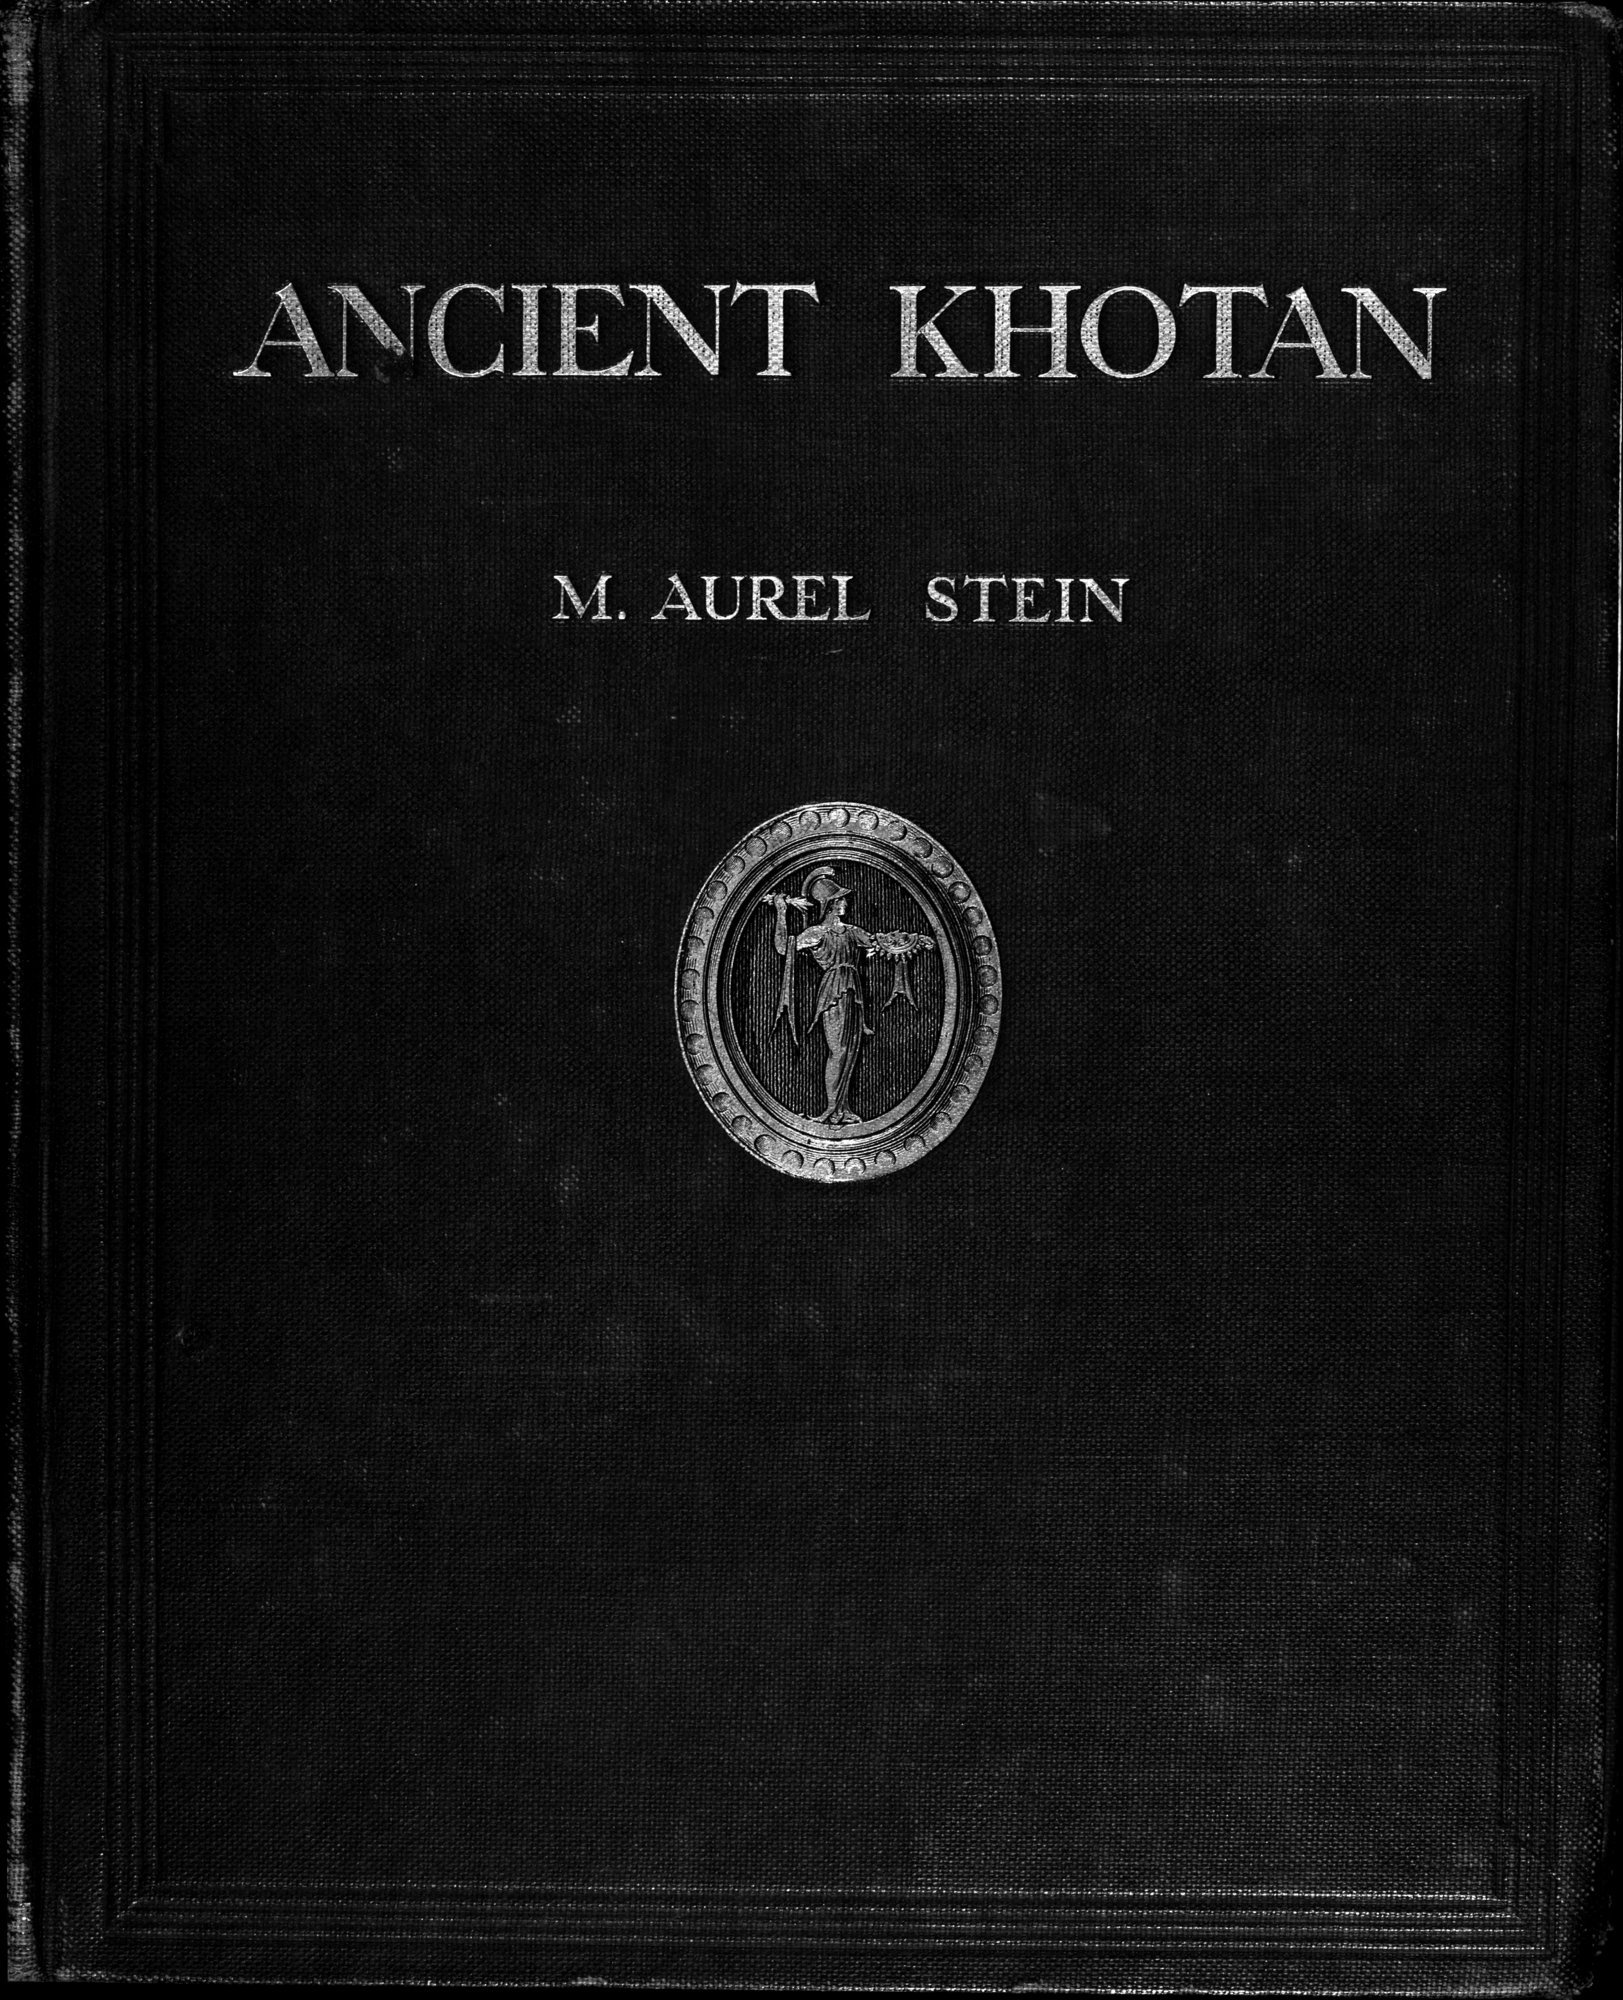 Ancient Khotan : vol.2 / Page 1 (Grayscale High Resolution Image)